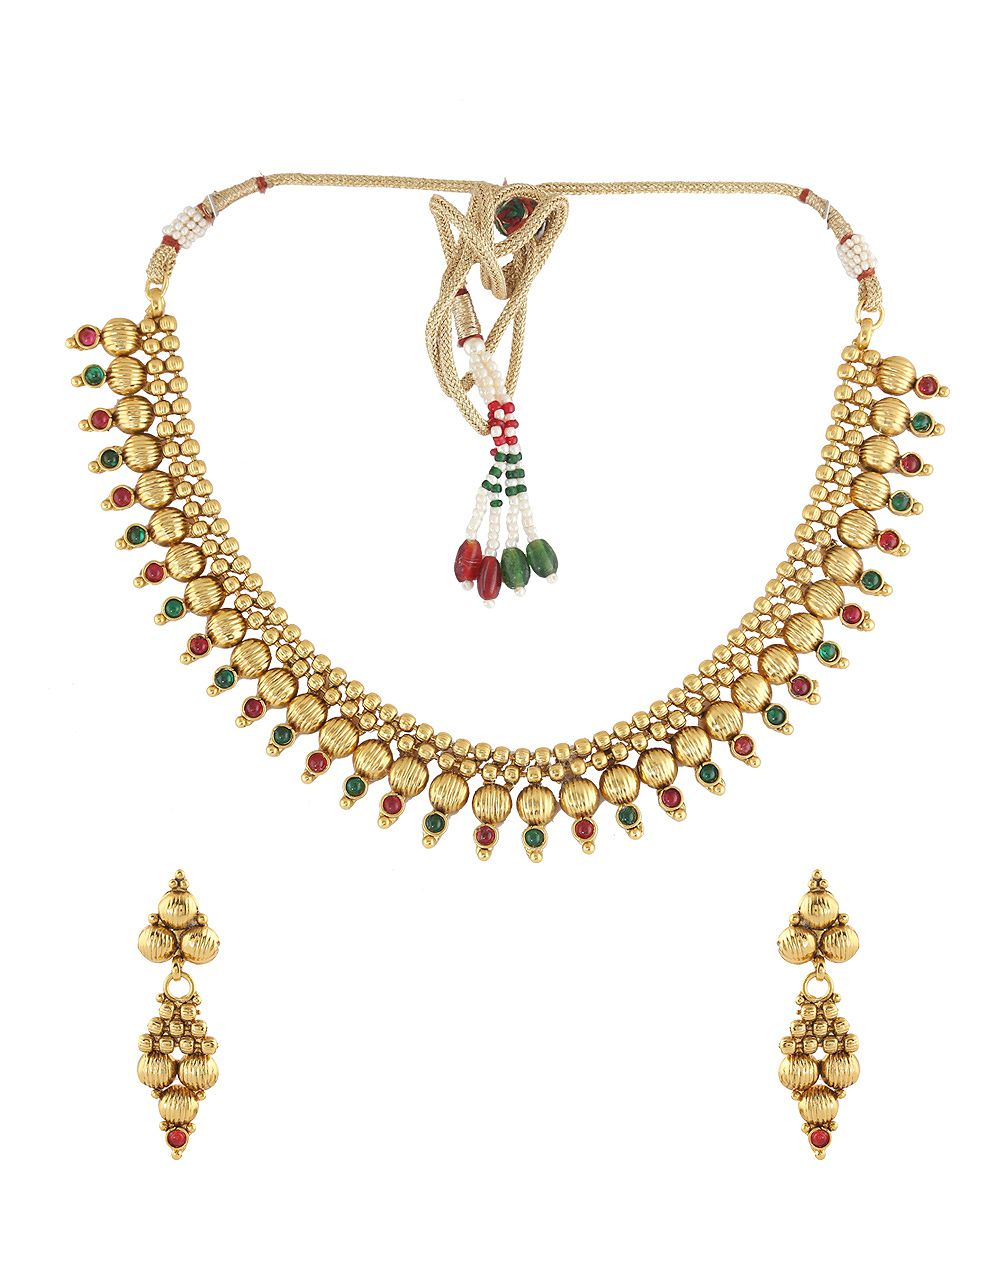 Anuradha Art Red-Green Combination Golden Beads Styled Wonderful Classy Traditional Necklace Set For Women/Girls